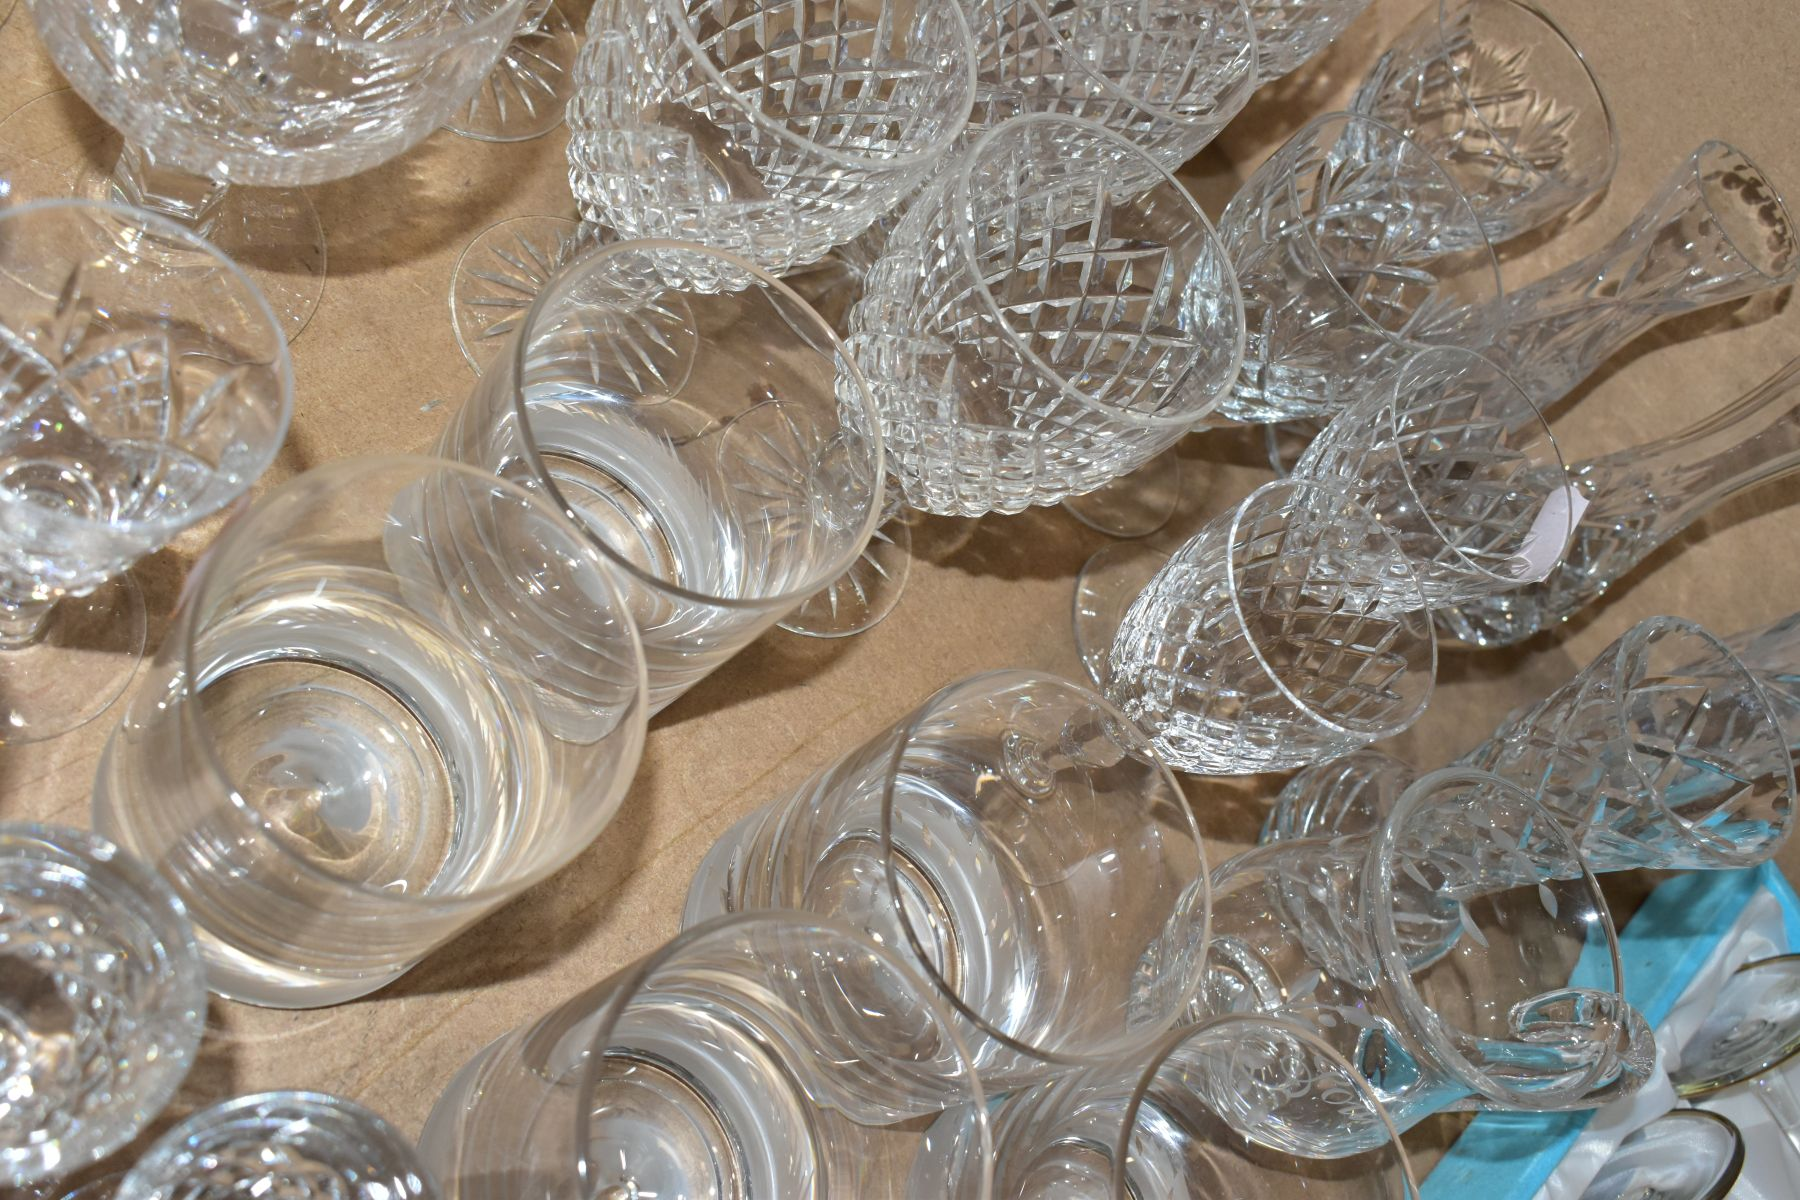 A GROUP OF GLASSWARE, including a boxed set of six Crystallera F.lli Fumo wine glasses, one set - Image 6 of 11